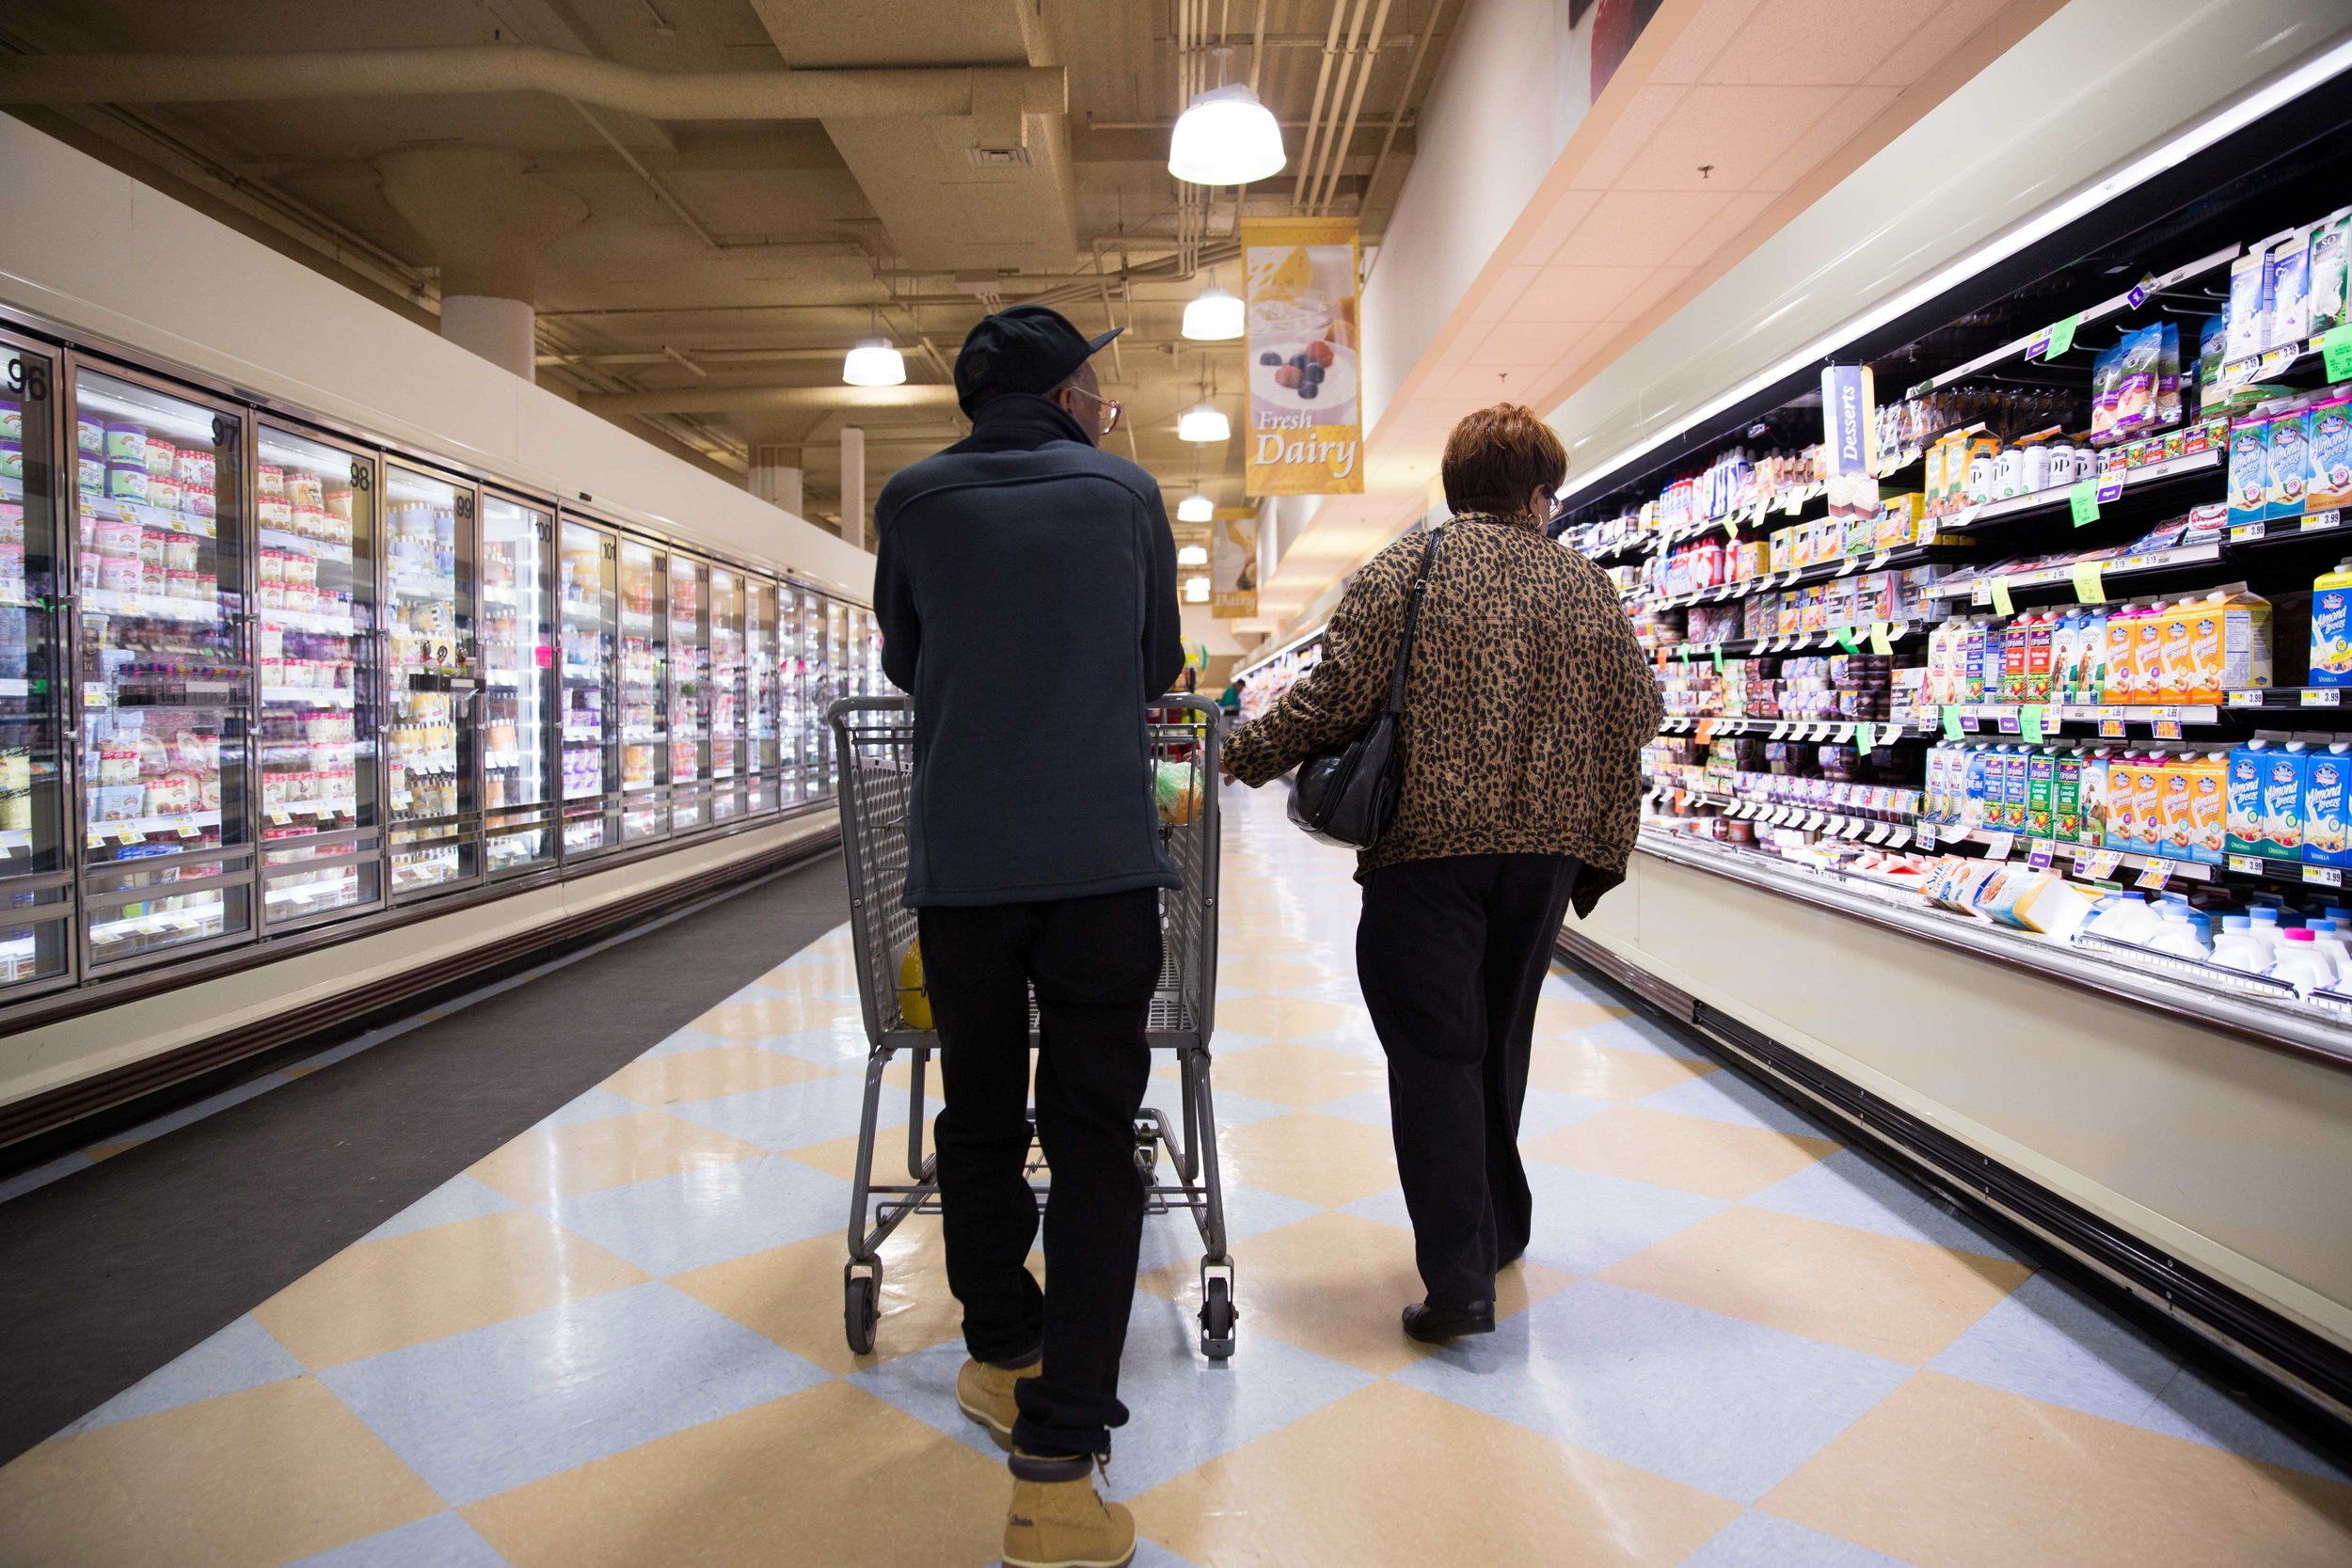 """Ronald and his mother Willie Mae go grocery shopping for the week in Philadelphia, a day after Ronald's release from St. Clair Correctional Facility in Alabama. """"I'm so tired of chicken and hot dogs, baloney,"""" Ronald says, as he speaks about what he's most excited to eat out of prison. """"What I'd really like to eat is some glazed donuts. It's been so long—I love glazed donuts."""""""